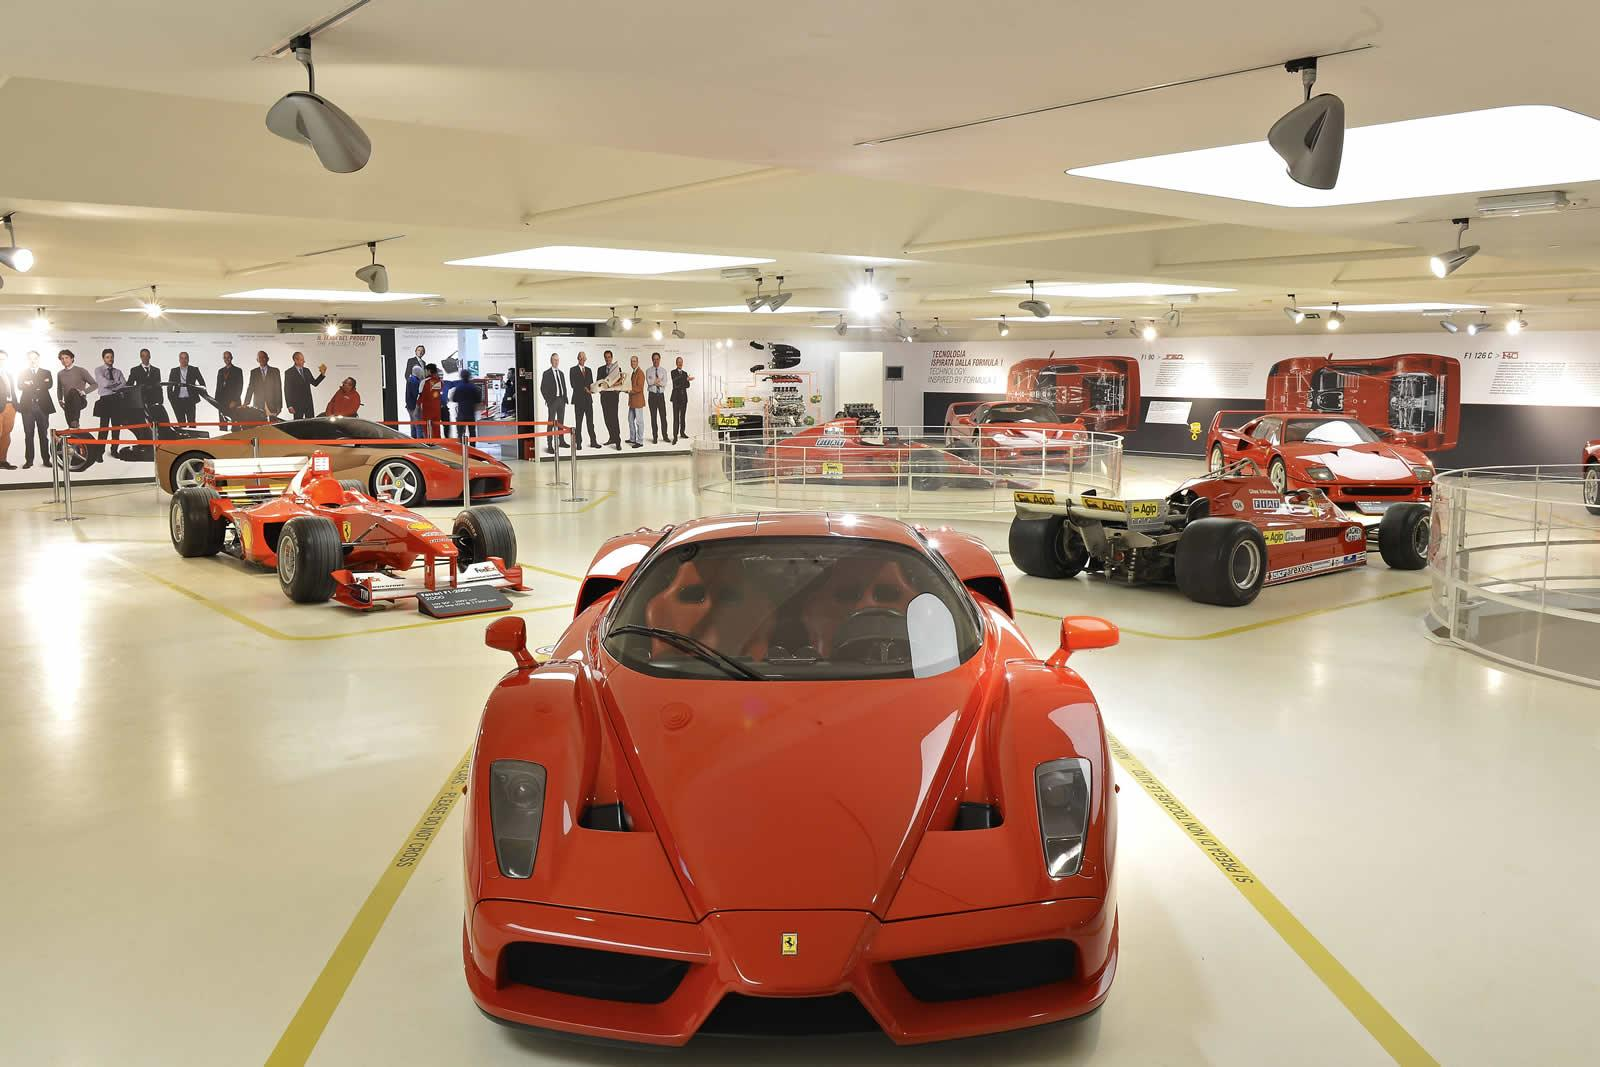 LaFerrari Showcased At The Ferrari Museum In Maranello